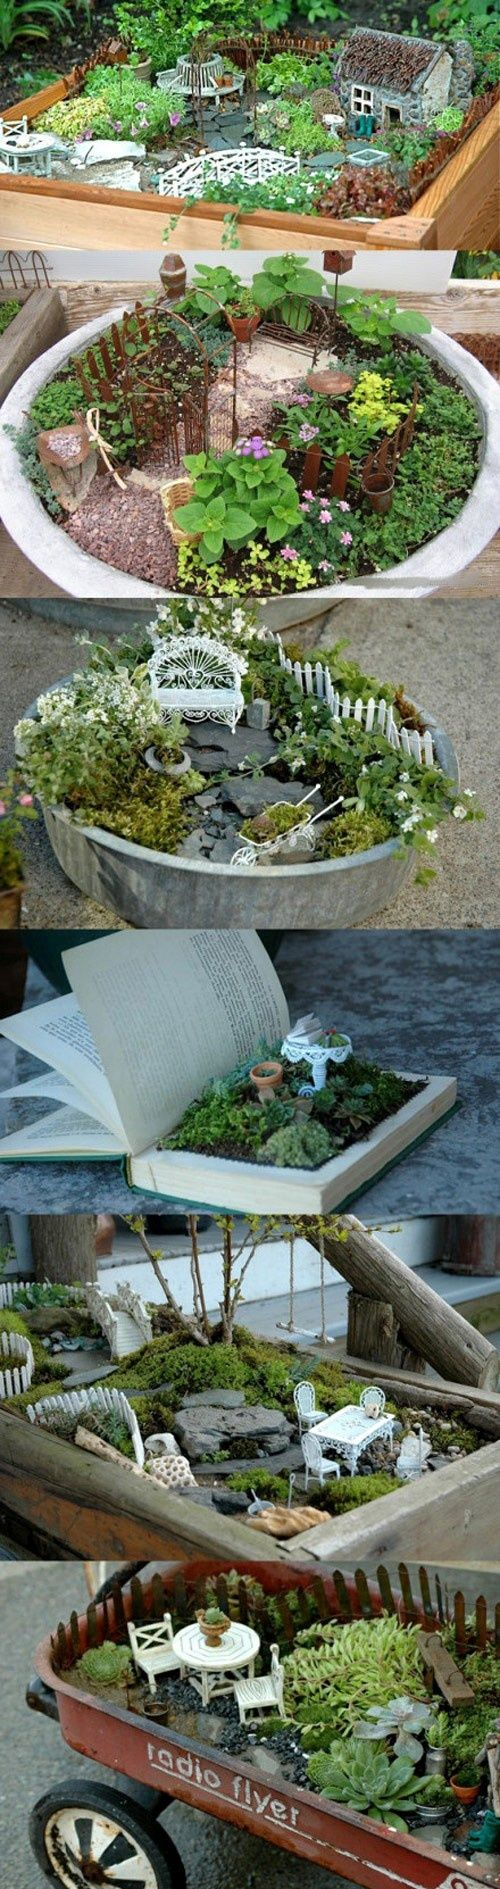 Different way to use unusual containers and play with minatures in a new way, great creativity.